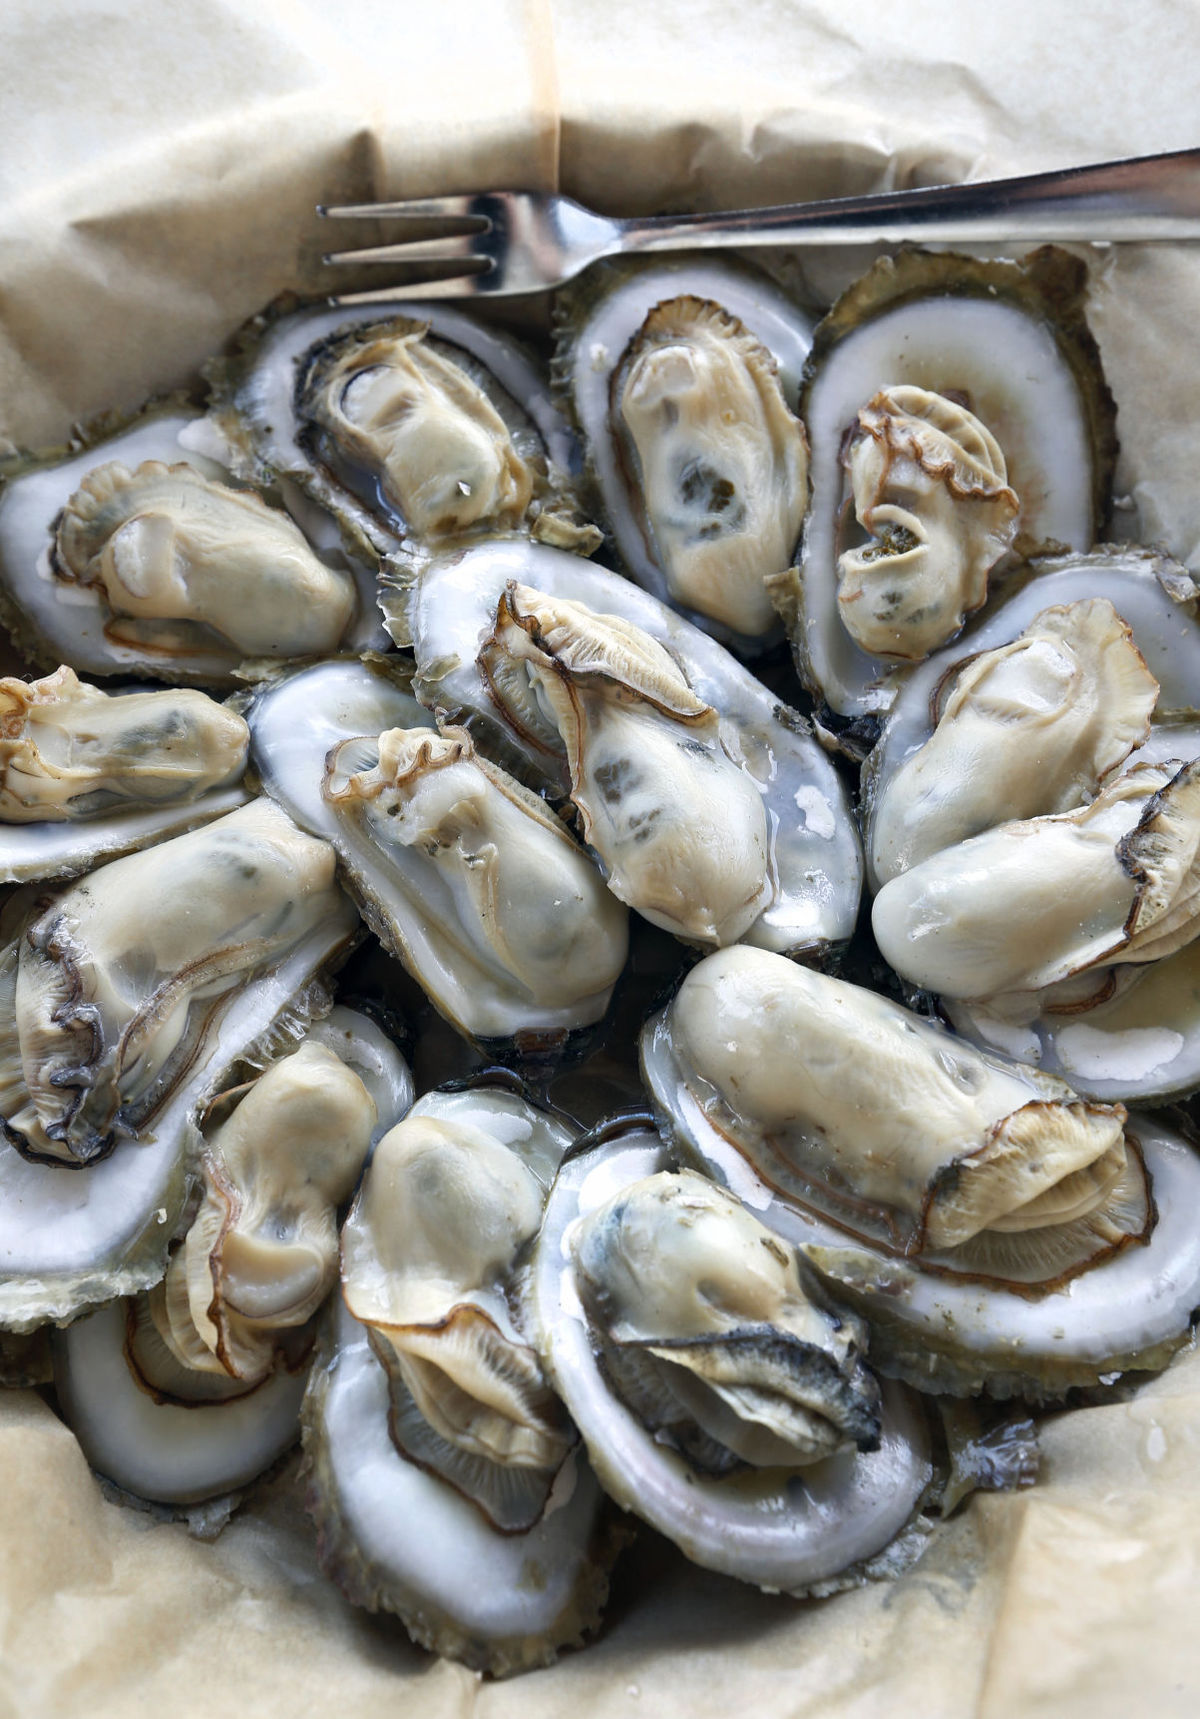 Why Rappahannock Oyster Company is Shipping Chesapeake Oysters to China